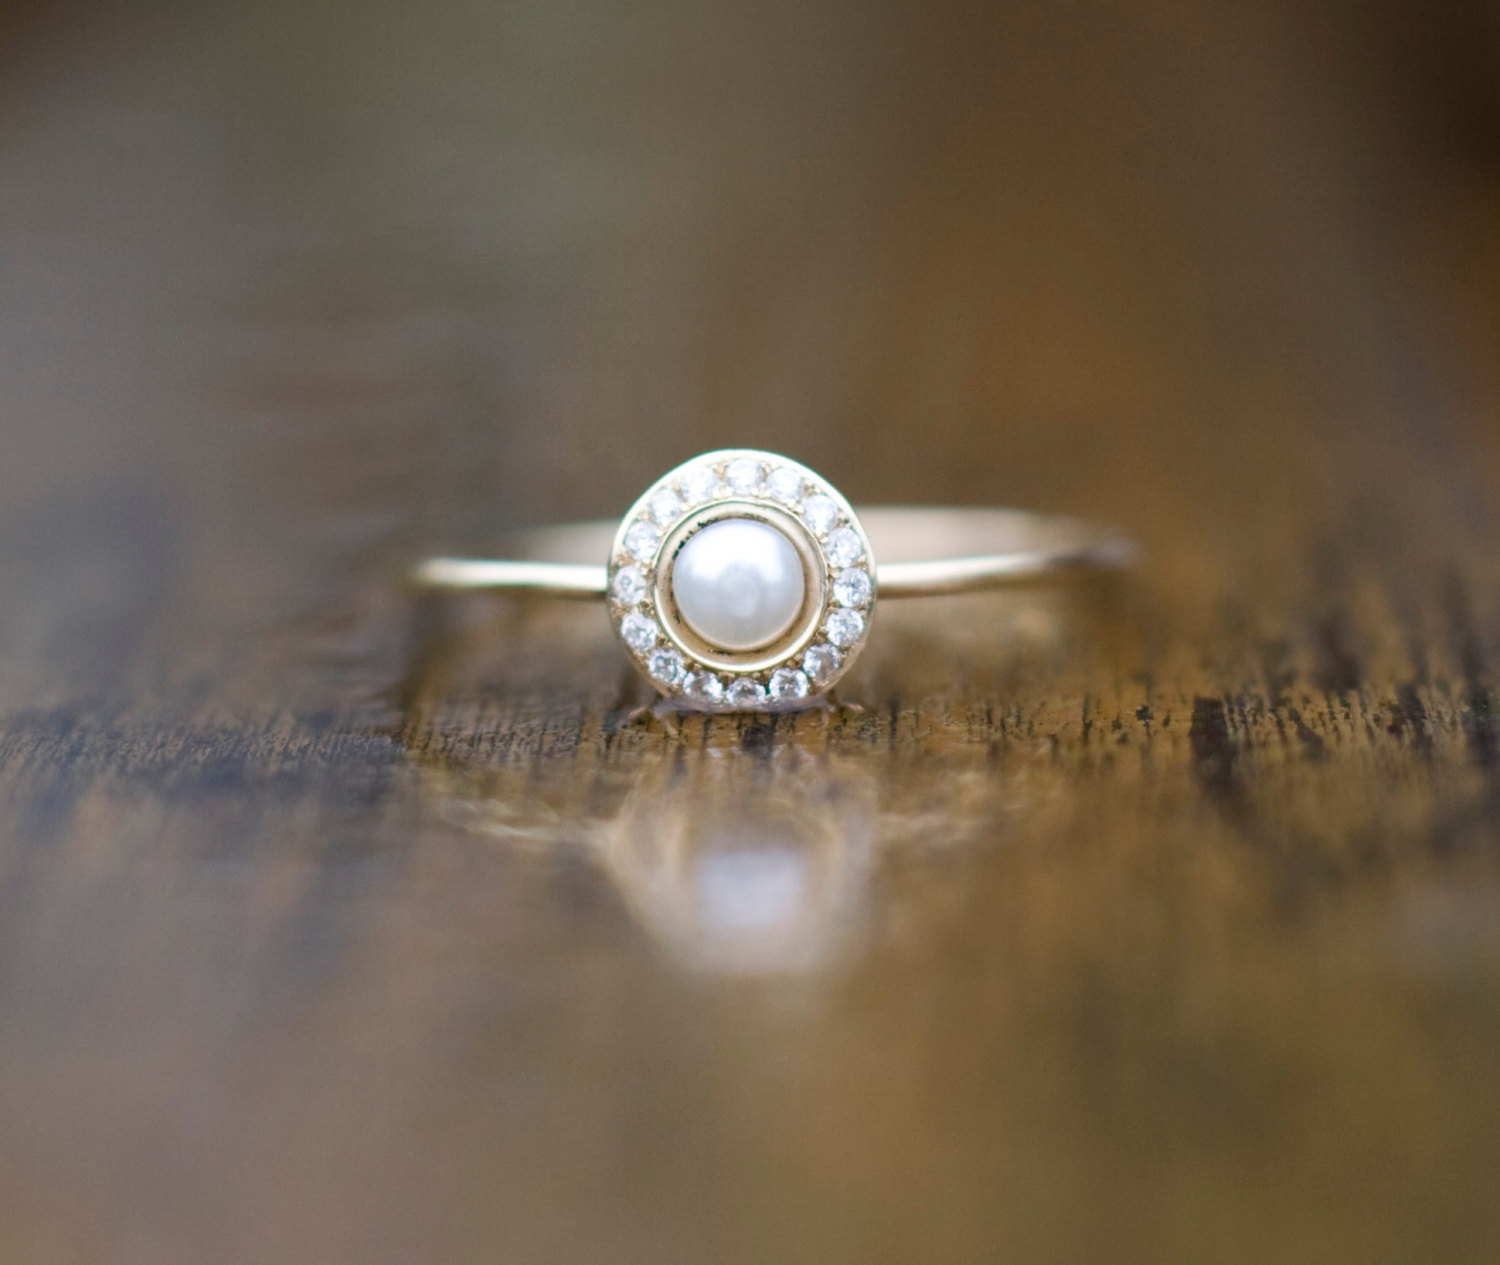 white pearl wedding ring with diamonds in 14k gold, pearl